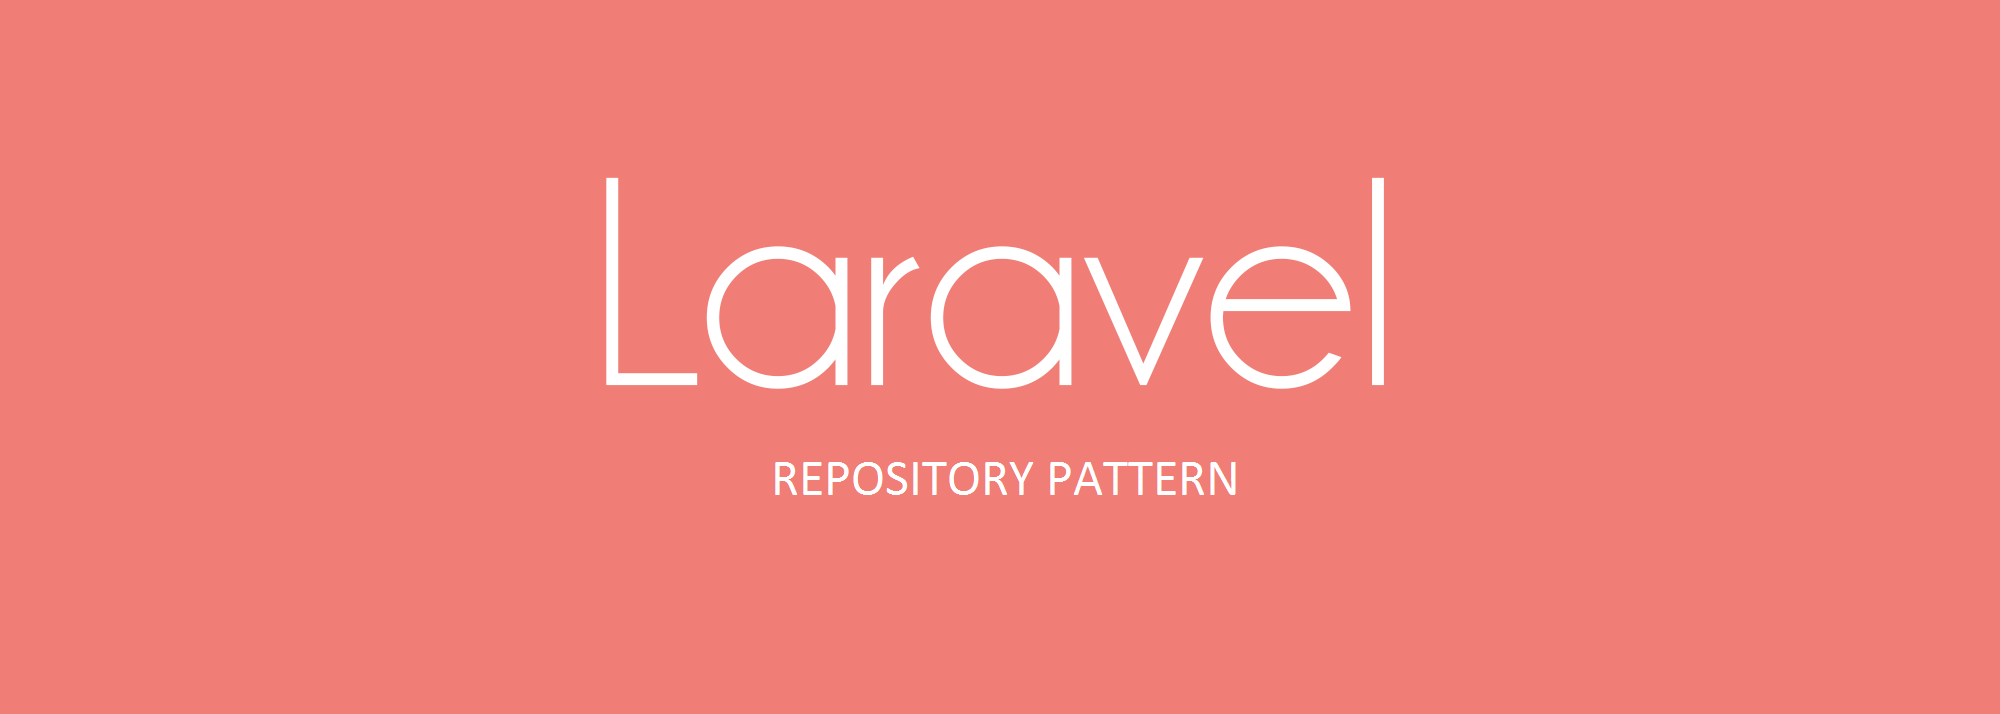 Why the repository pattern is often misunderstood in the laravel why the repository pattern is often misunderstood in the laravel community baditri Image collections